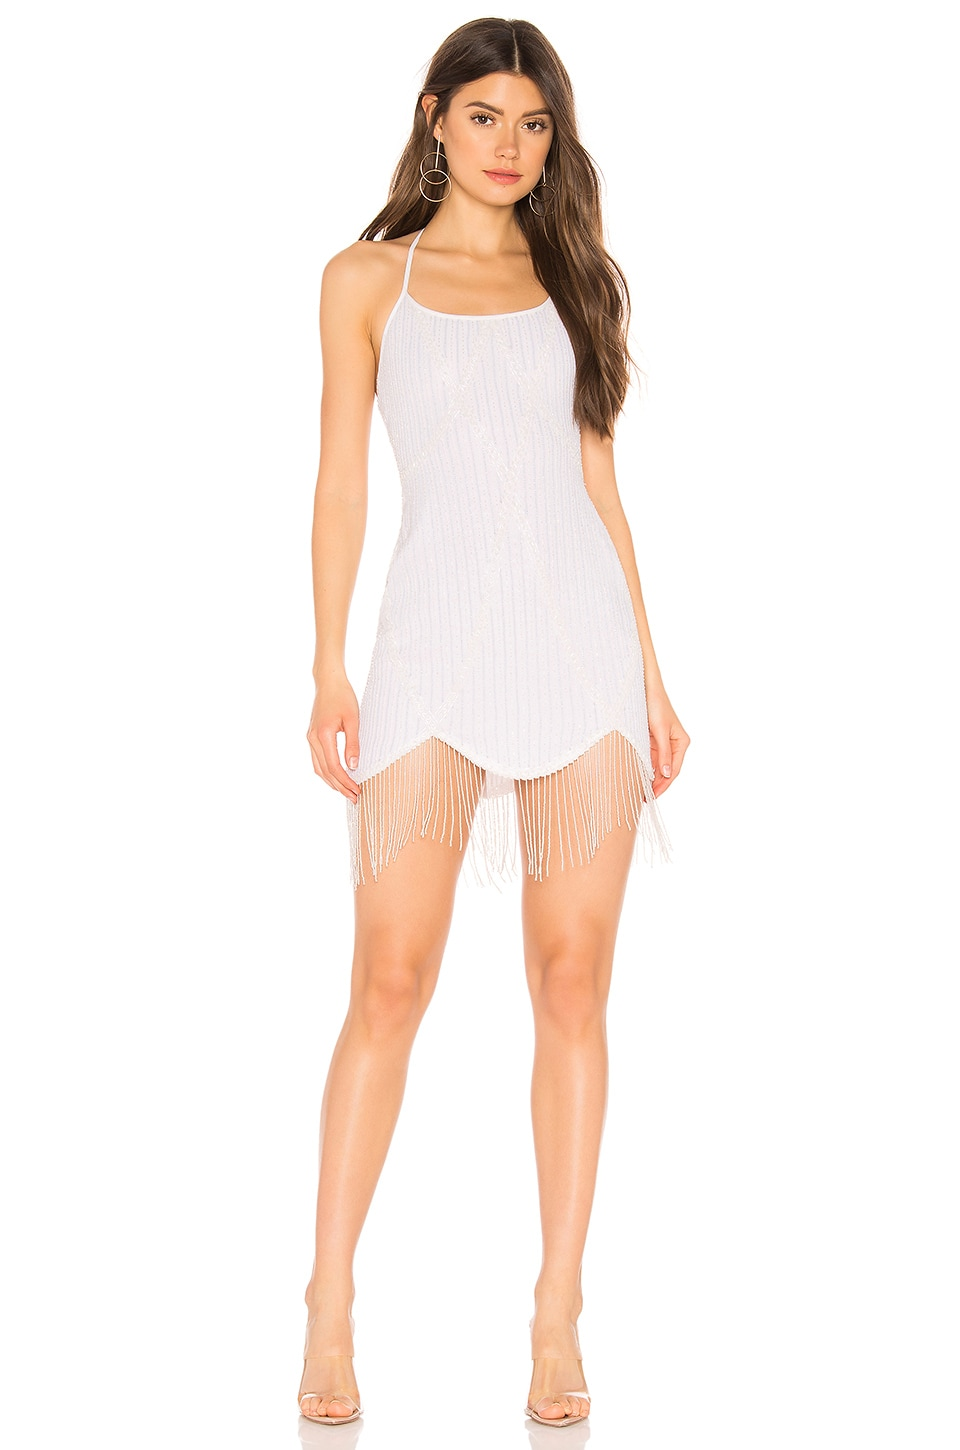 MAJORELLE Paloma Mini Dress in Pearl White